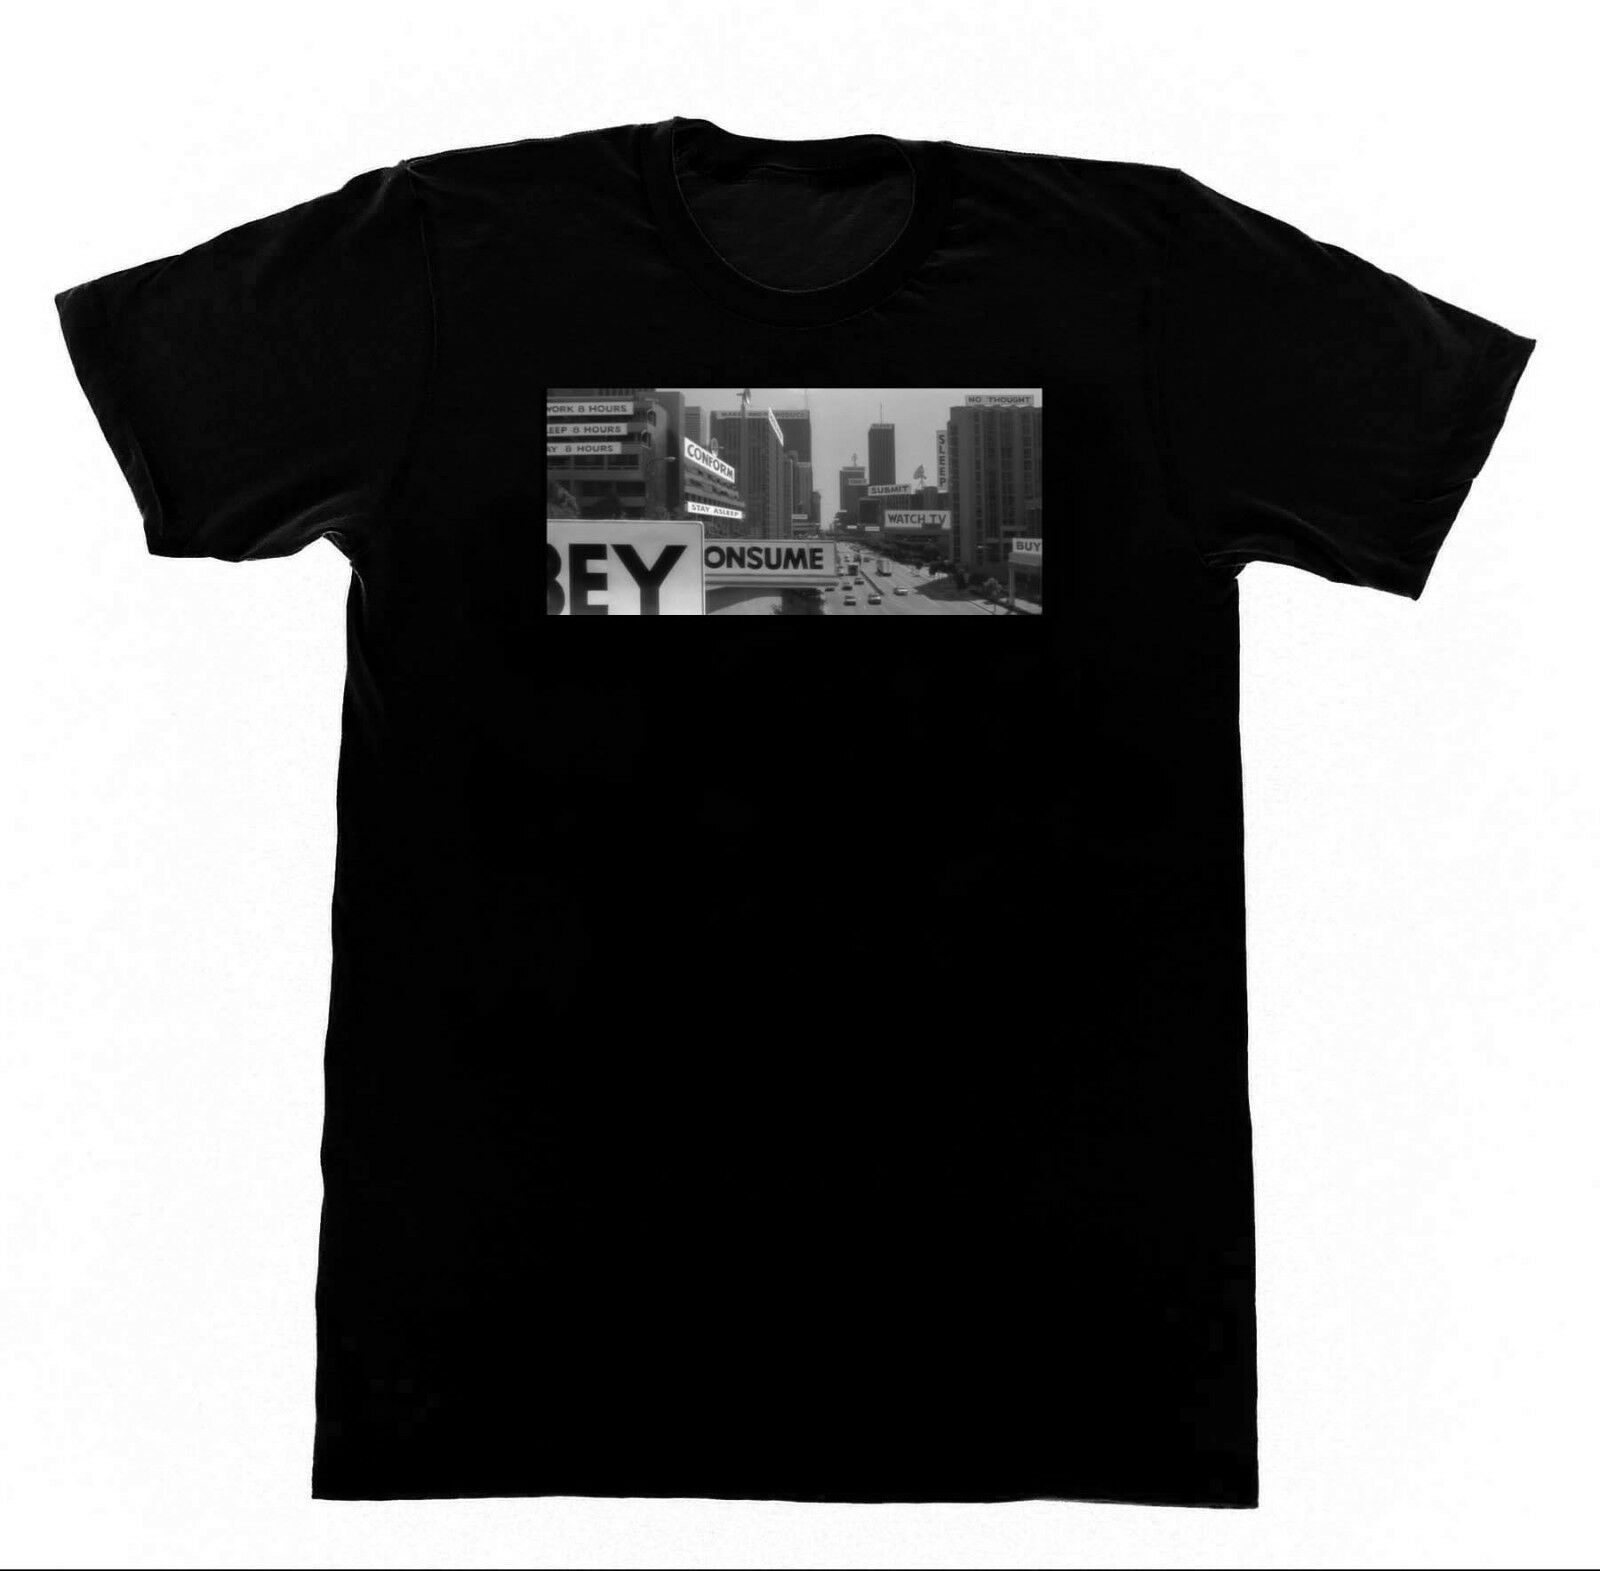 They Live – Shirt TShirt 141 John Carpenter Rowdy Rodney Piper